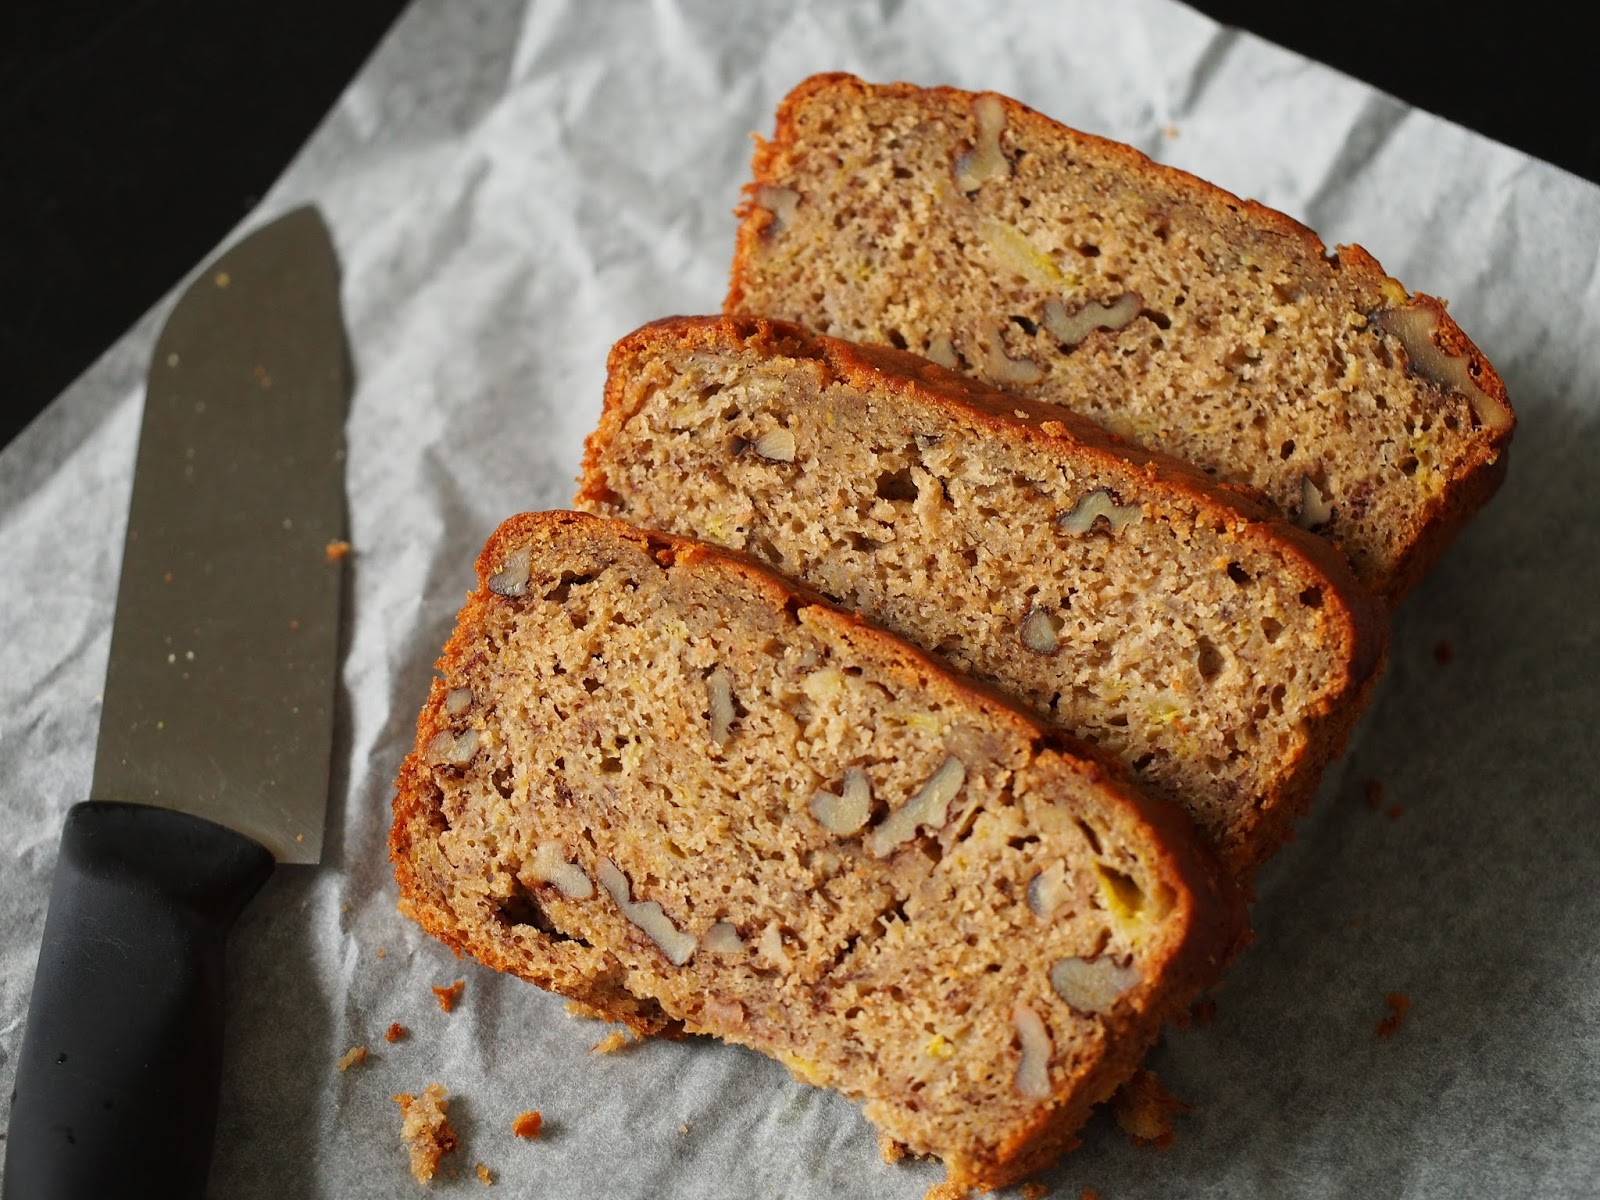 Simple everyday food banana walnut loaf this is jaime olivers recipe as always i like to reduce the amount of sugar and butter the level of sweetness is just right for us and the loaf is very forumfinder Images